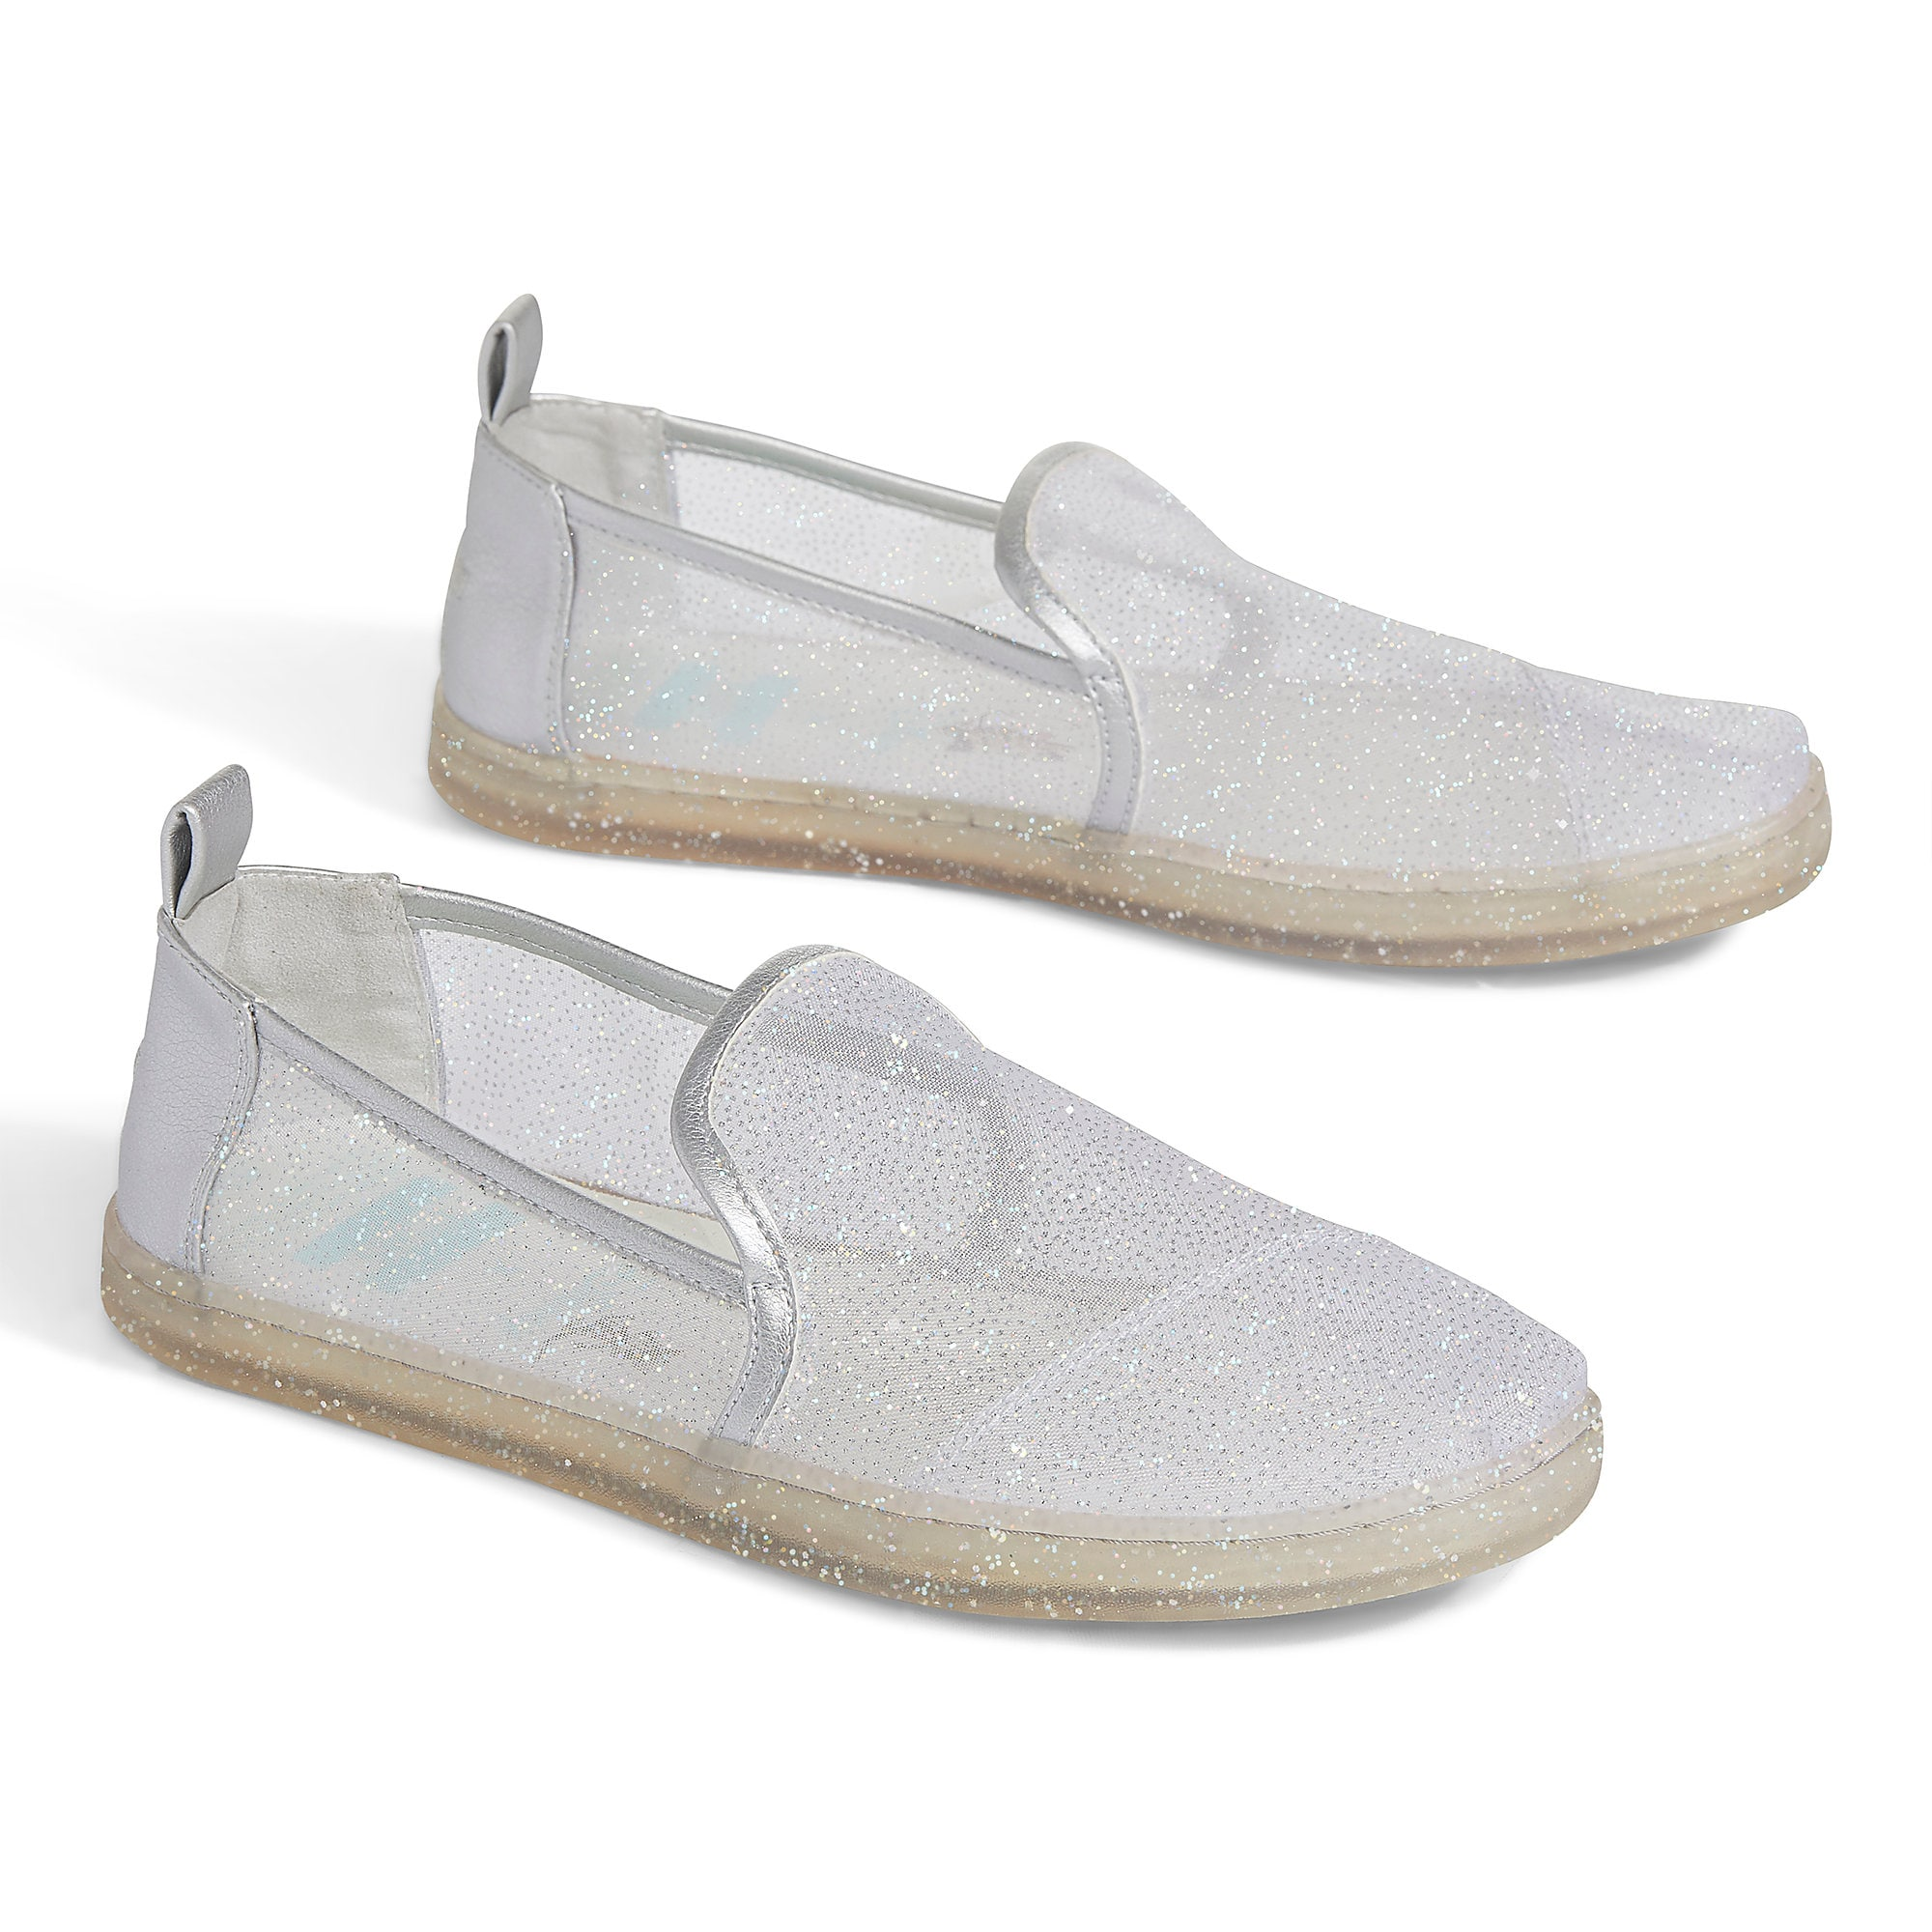 68a5a6f9a0b Gus and jaq glitter mesh shoes for women toms cinderella jpg 1200x1200 Mesh  toms shoes